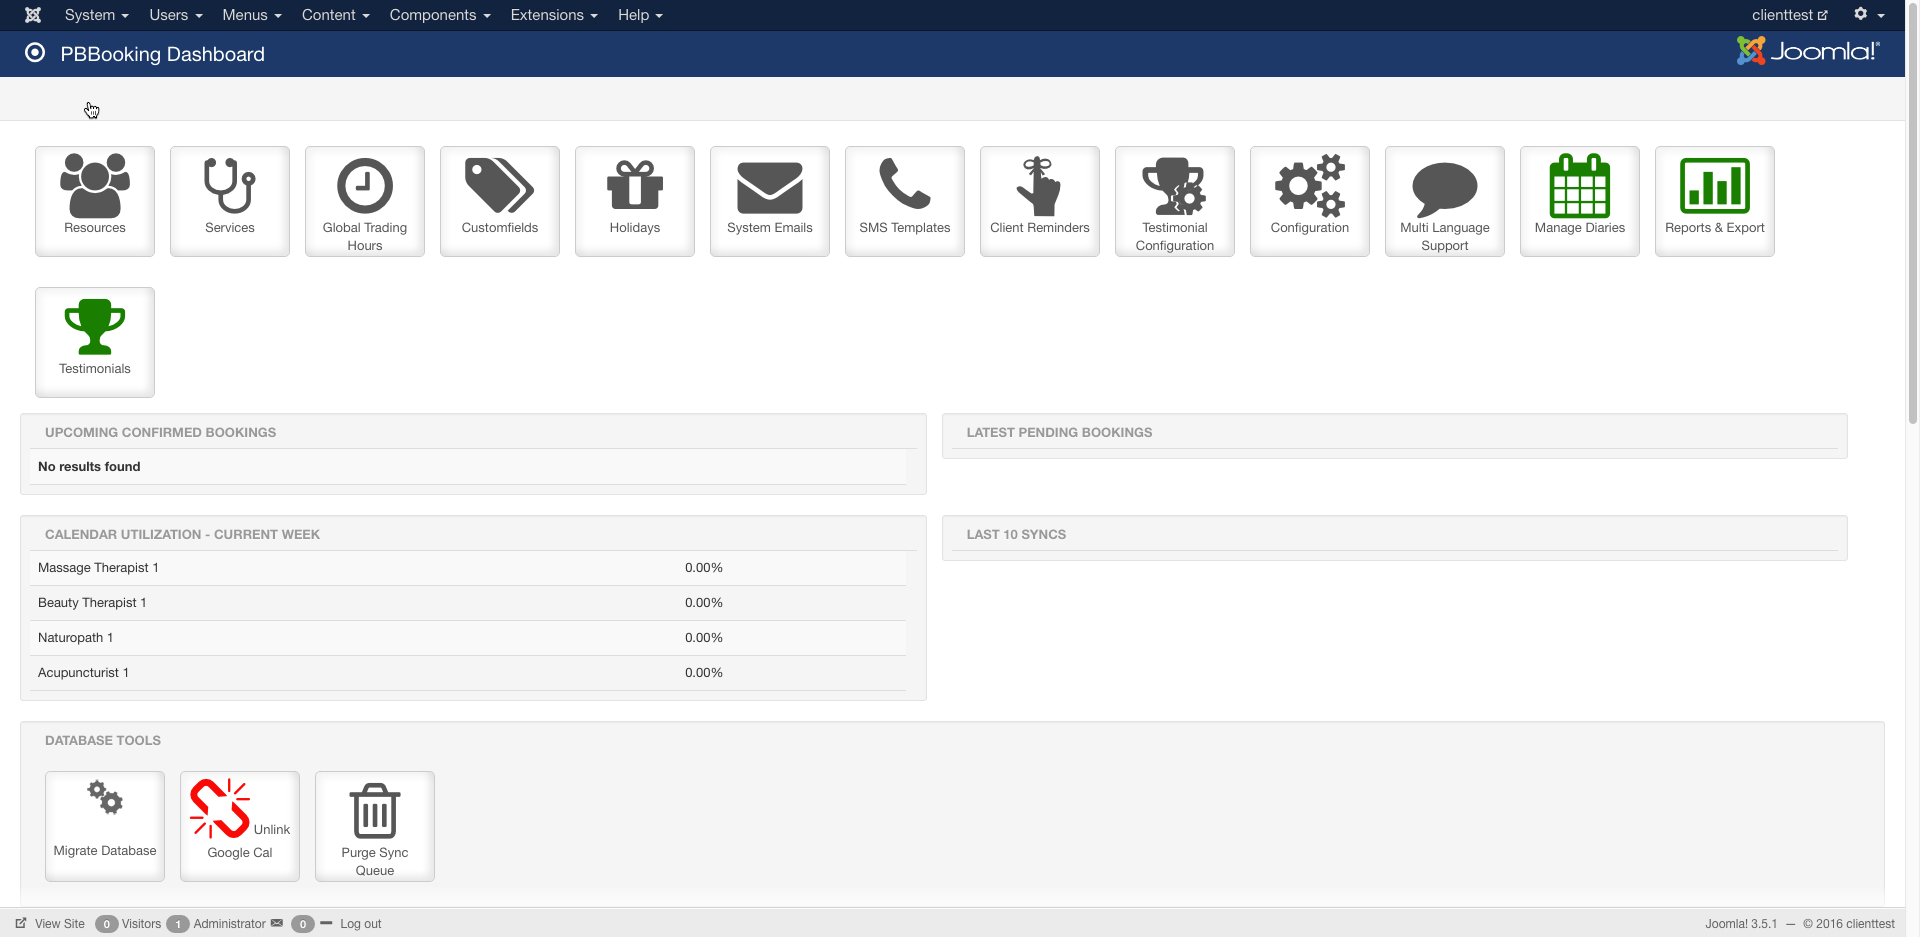 The Main Pbbooking Dashboard